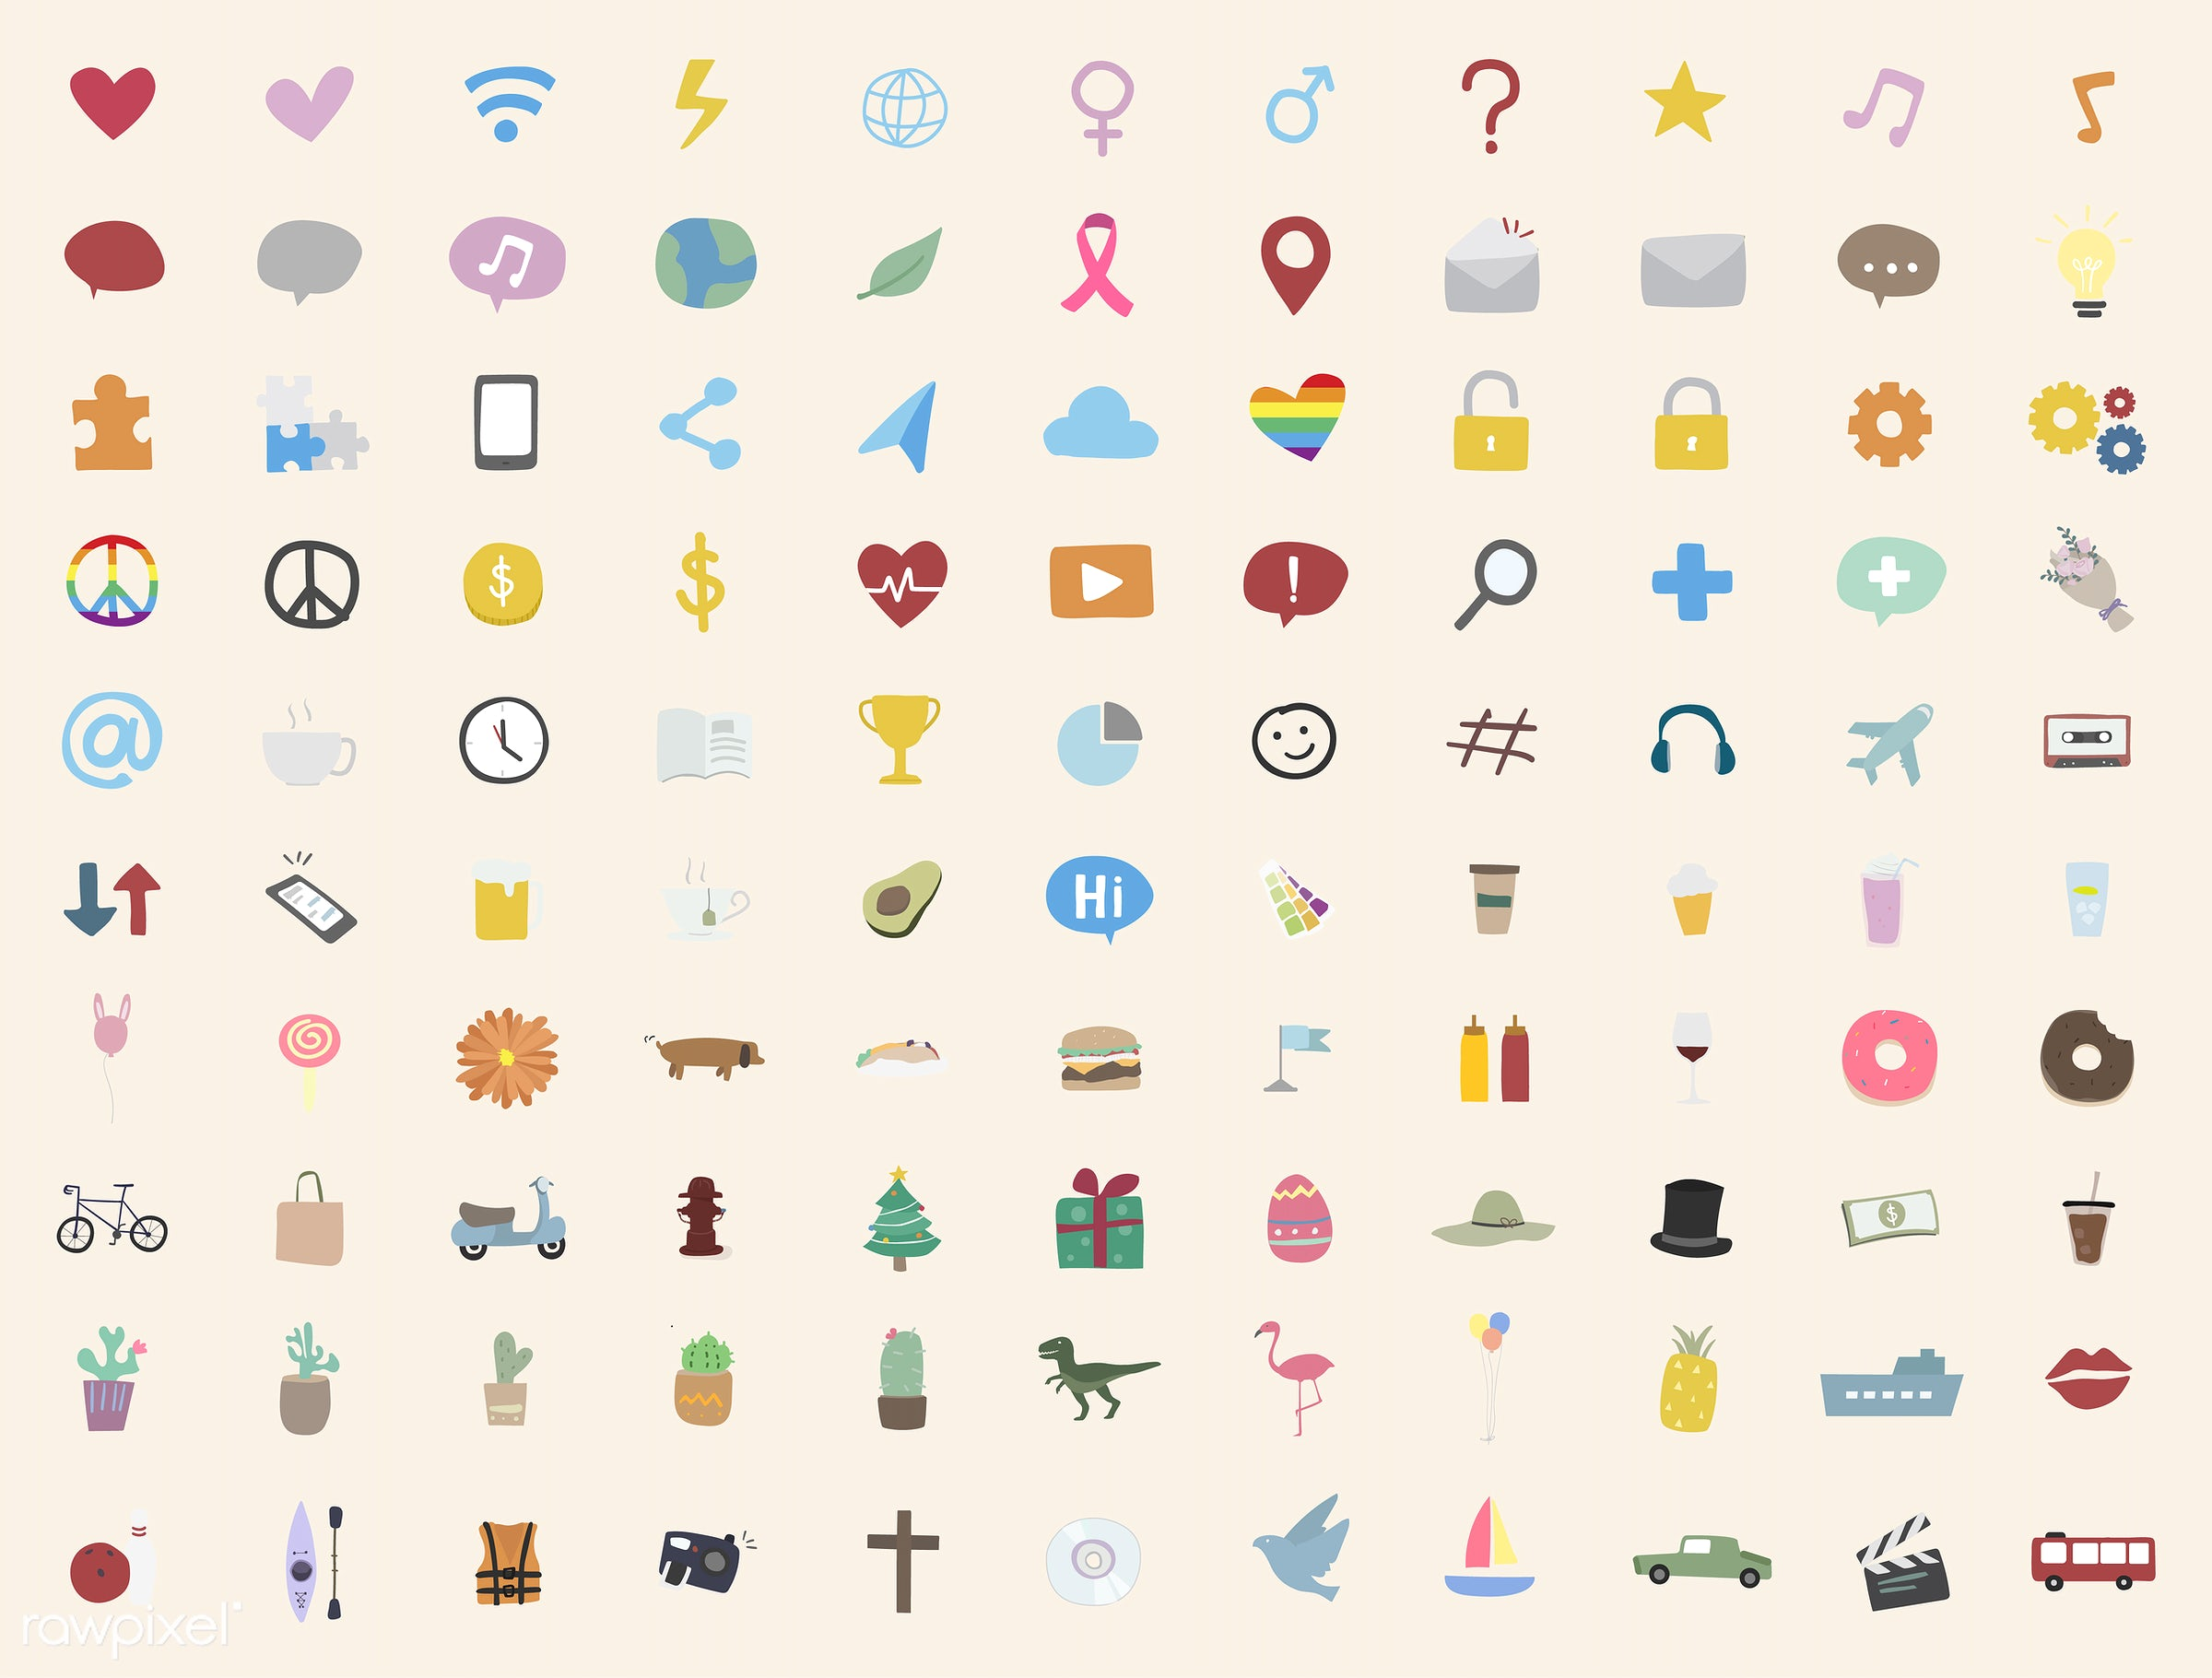 Vector set of illustrated people - collection, design, flat, graphic, icon, illustration, lifestyle, media, network, set,...